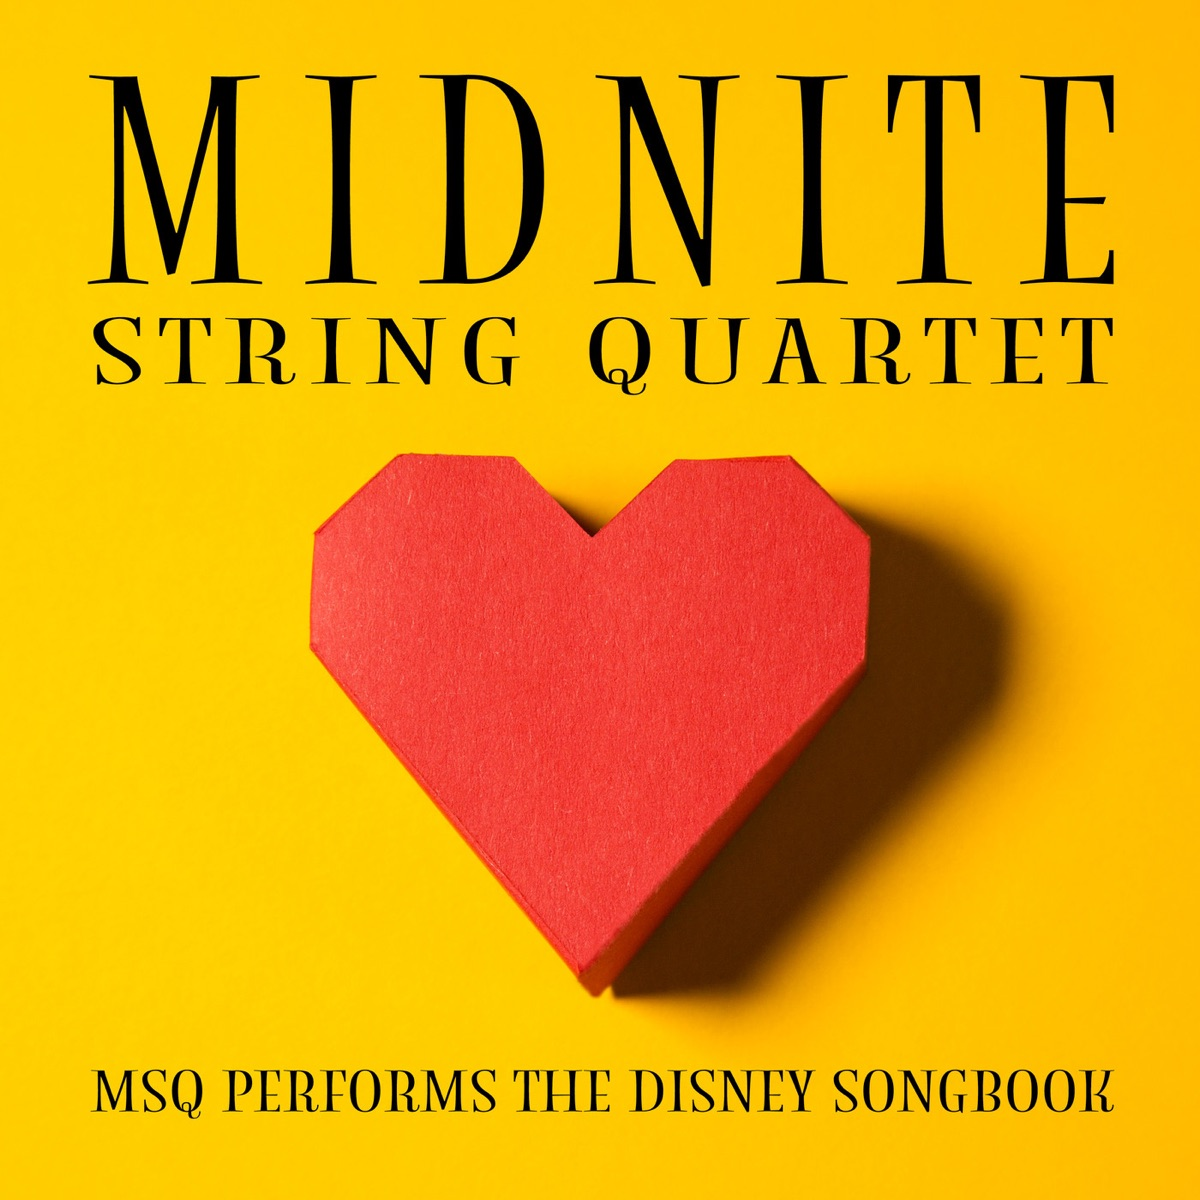 MSQ Performs the Disney Songbook Midnite String Quartet CD cover